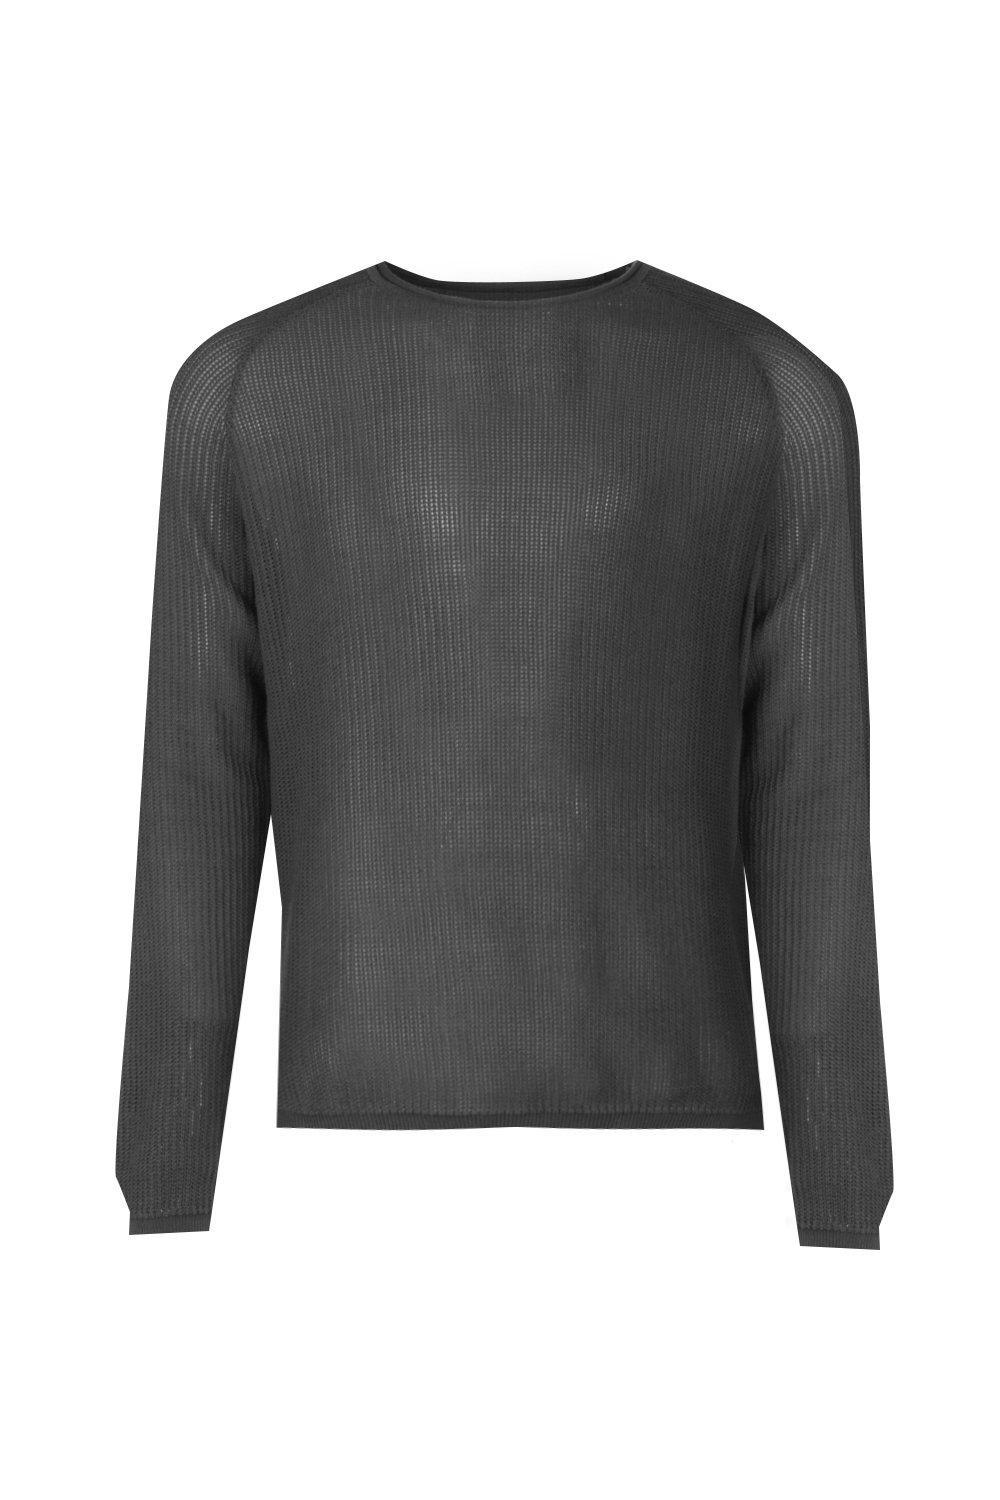 Boohoo Cotton Bagel Neck Draped Jumper With Open Knit in Charcoal (Grey) for Men